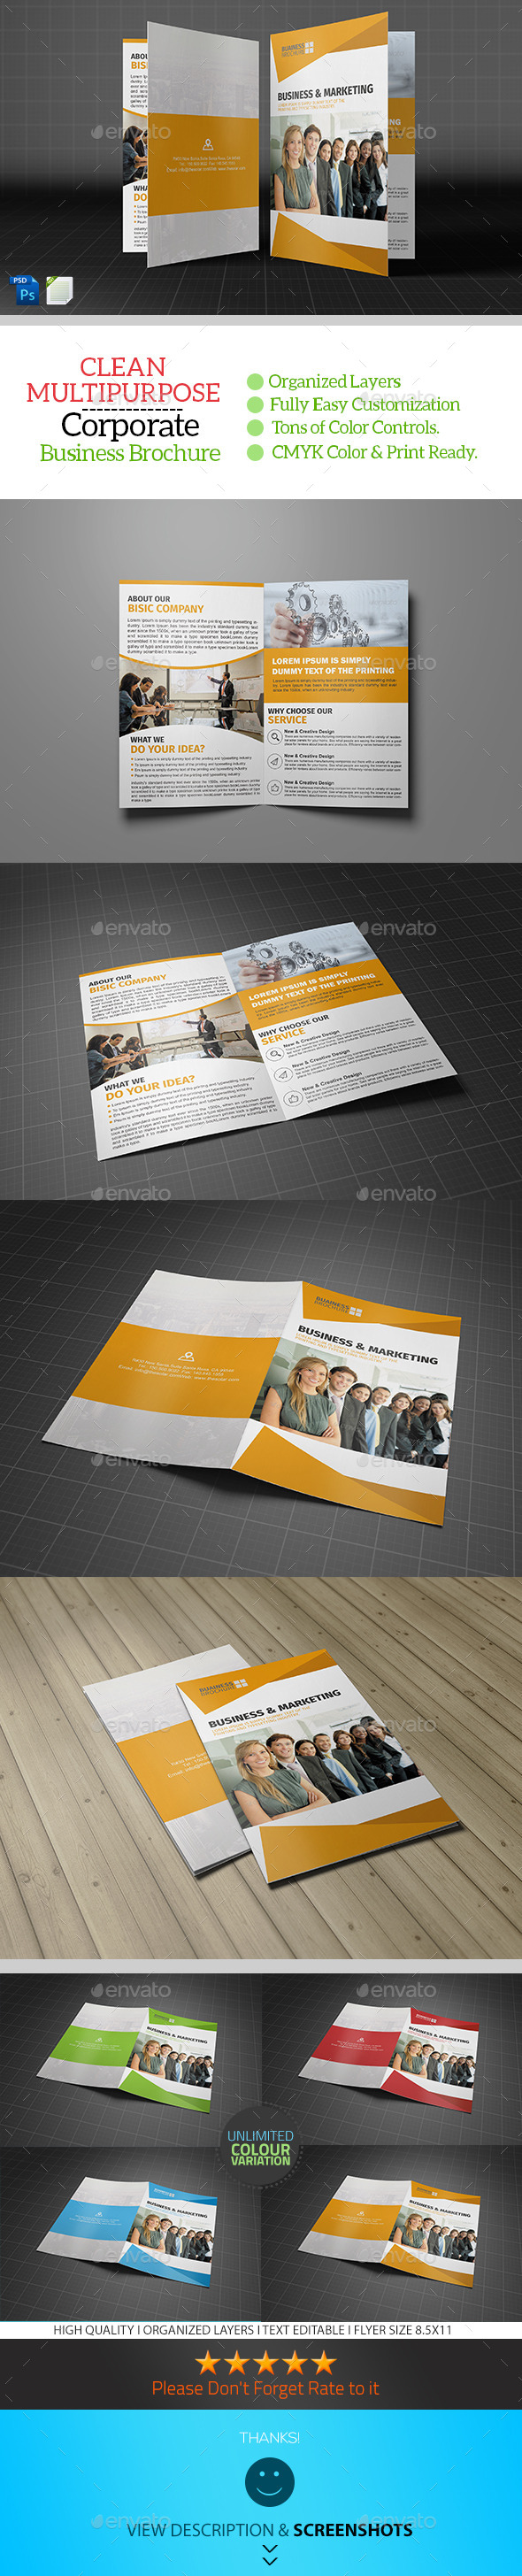 Corporate Bifold Brochure Template Vol03 - Corporate Brochures